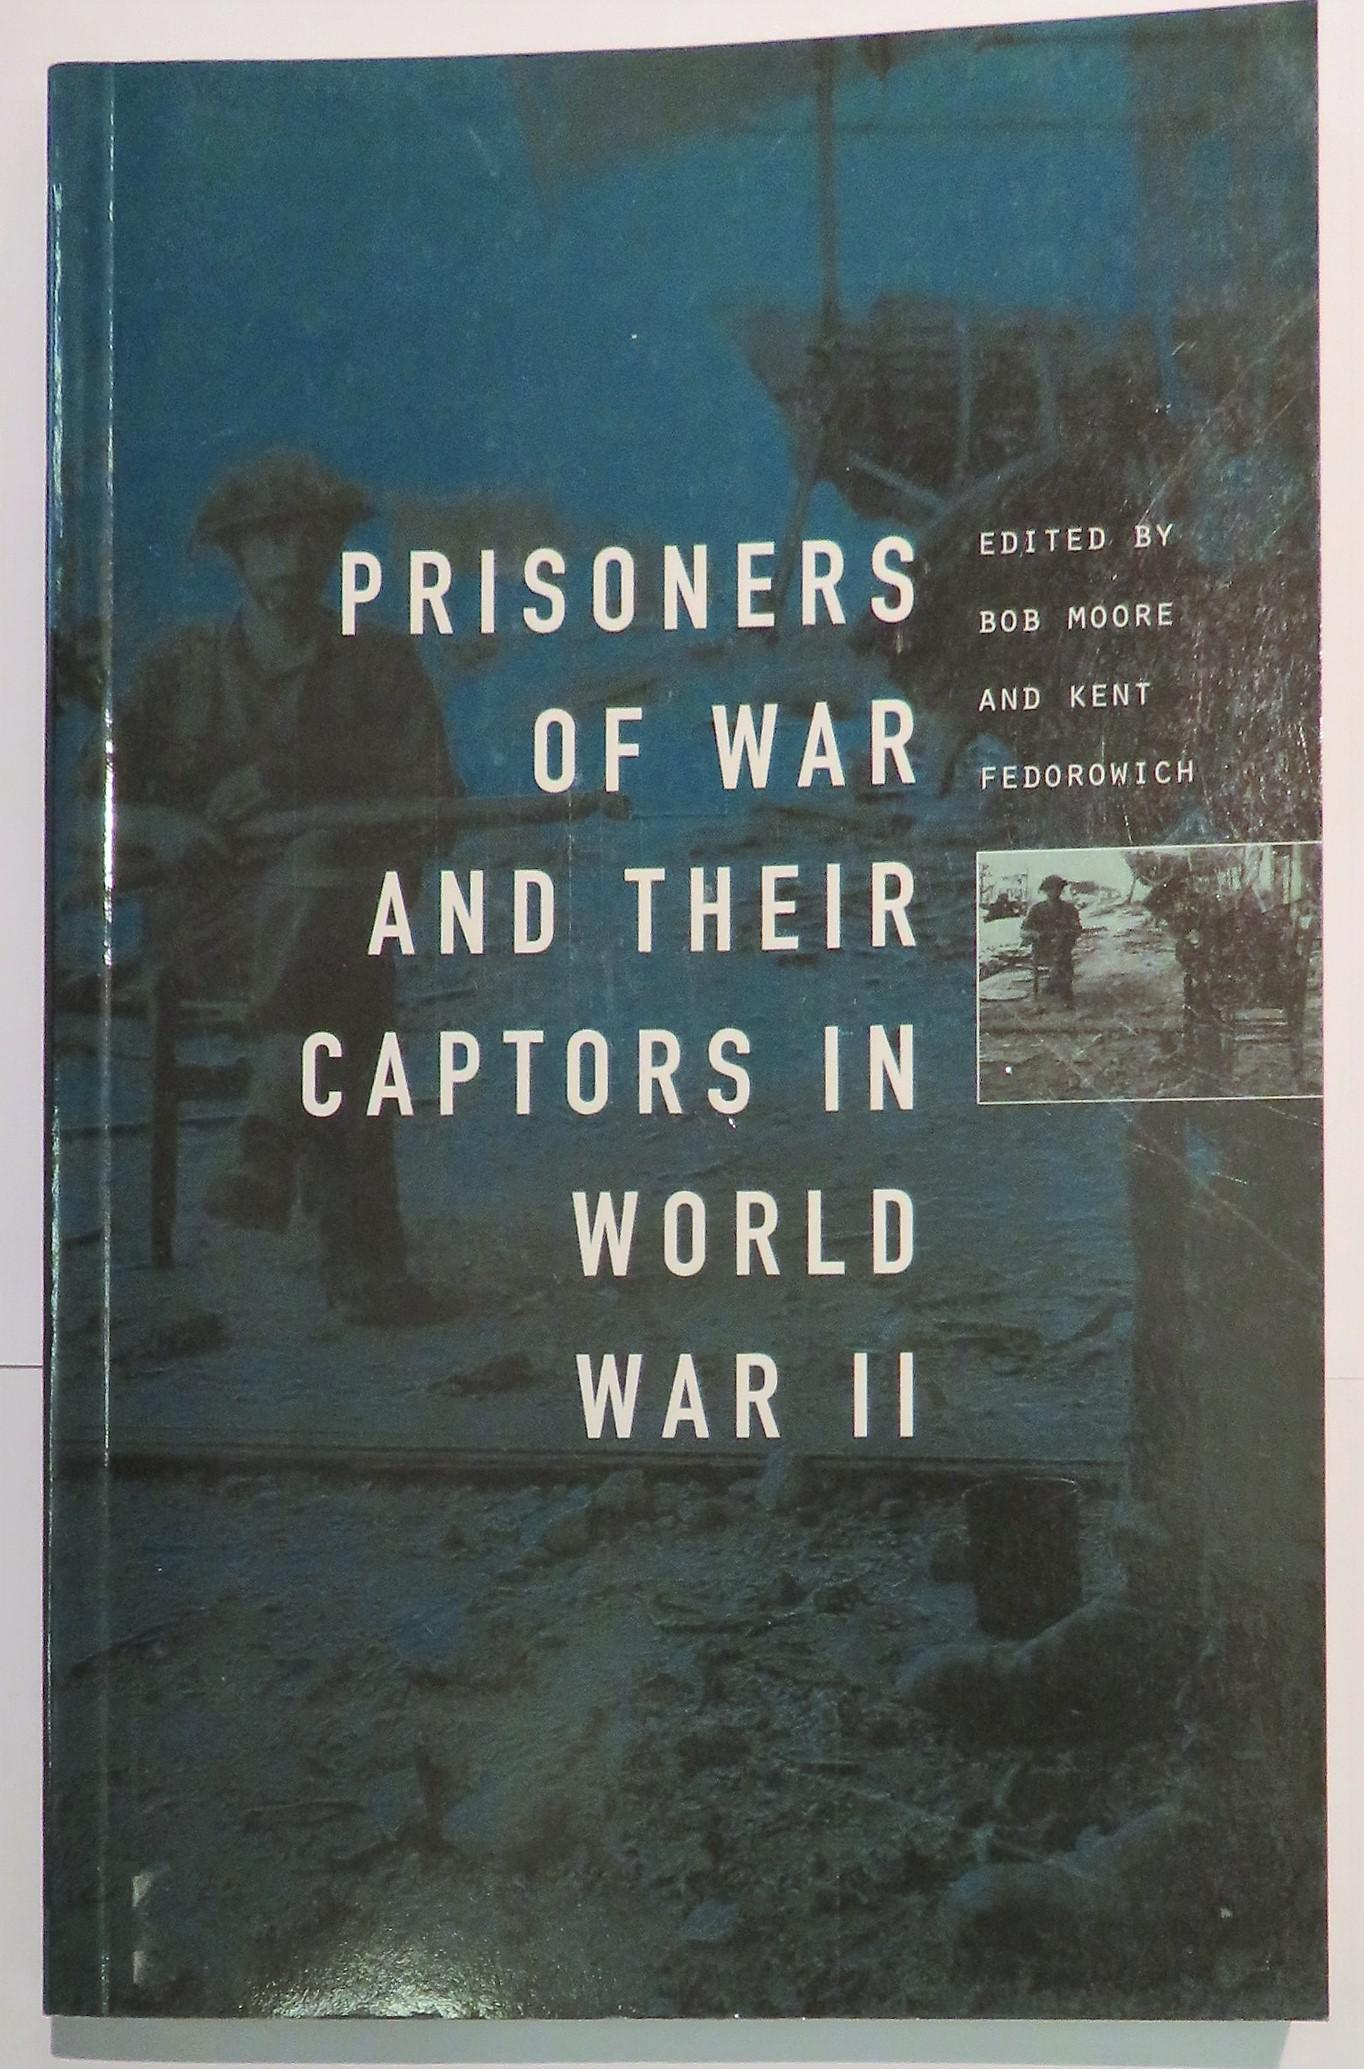 Prisoners of War And Their Captors